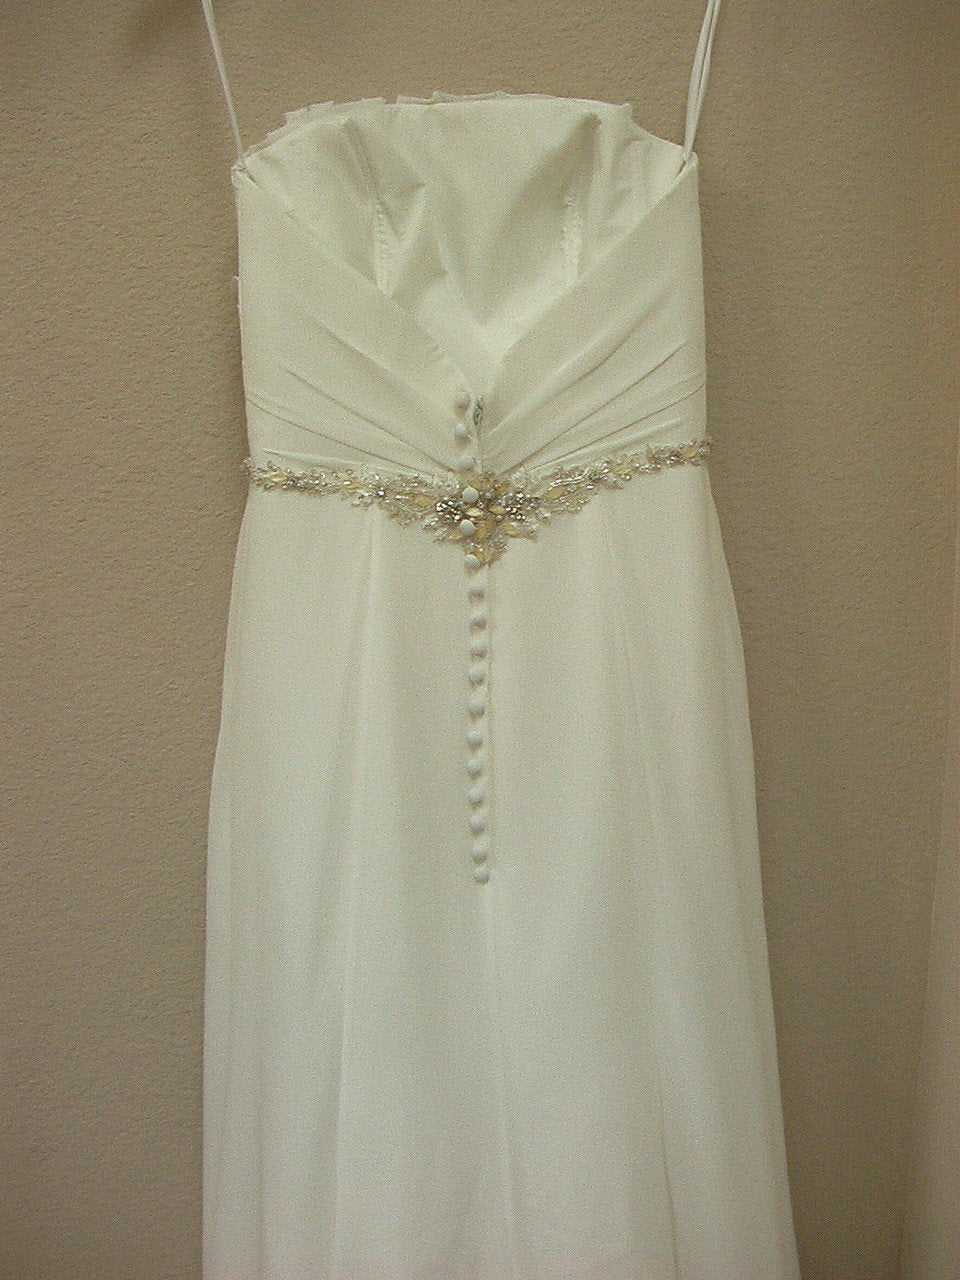 Allure 920 Ivory/Silver size 6 In Stock Wedding Dress - Tom's Bridal